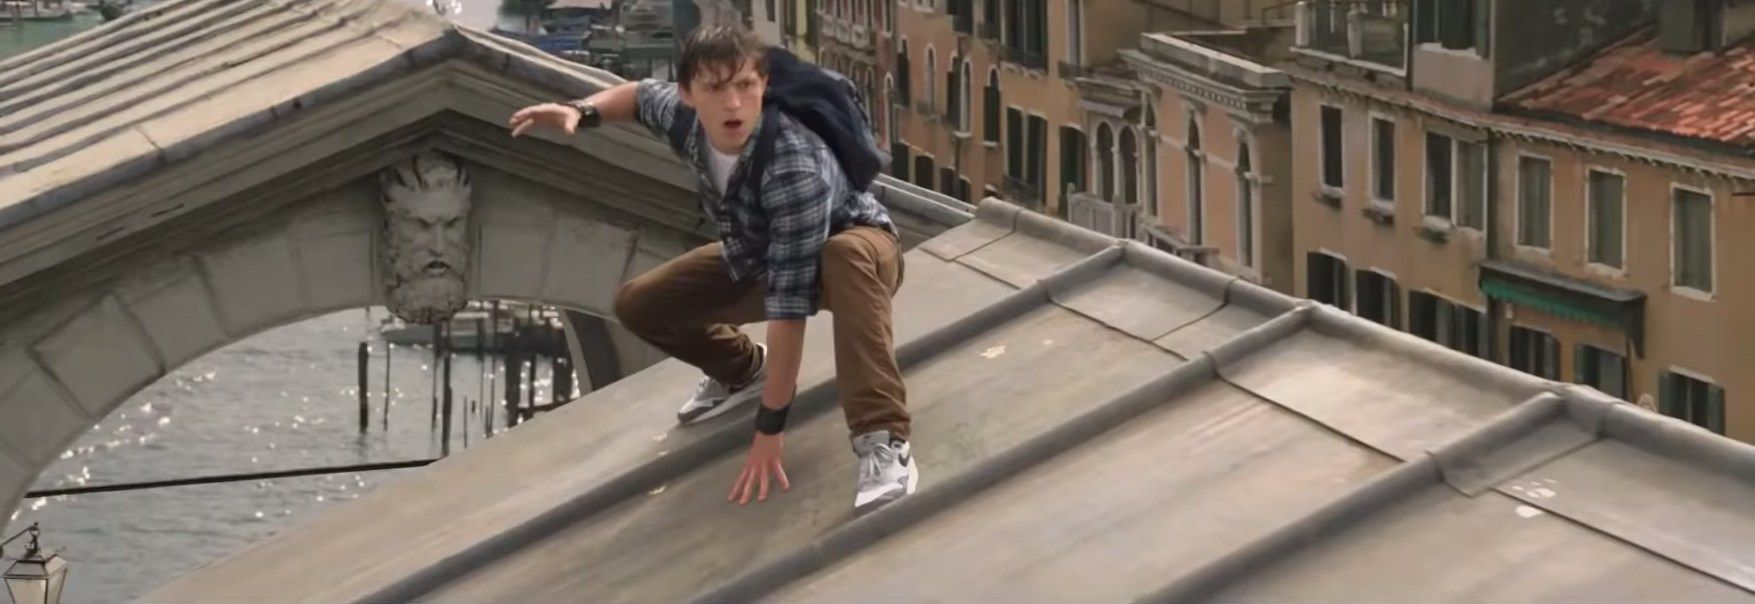 Nike Air Max shoes Tom Holland in